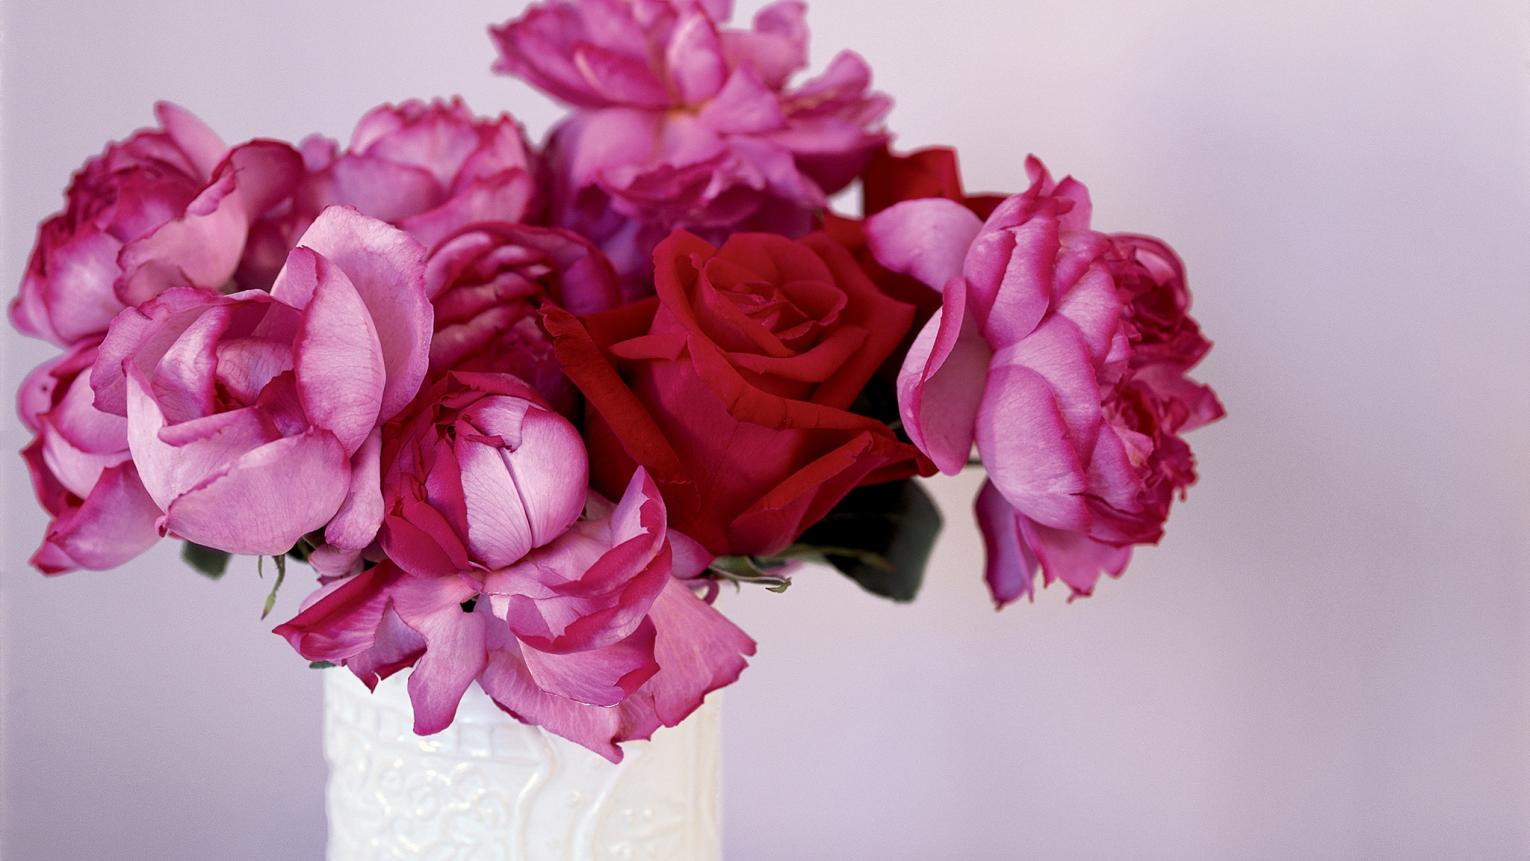 Stunning pink and red flowers symbolise romance.